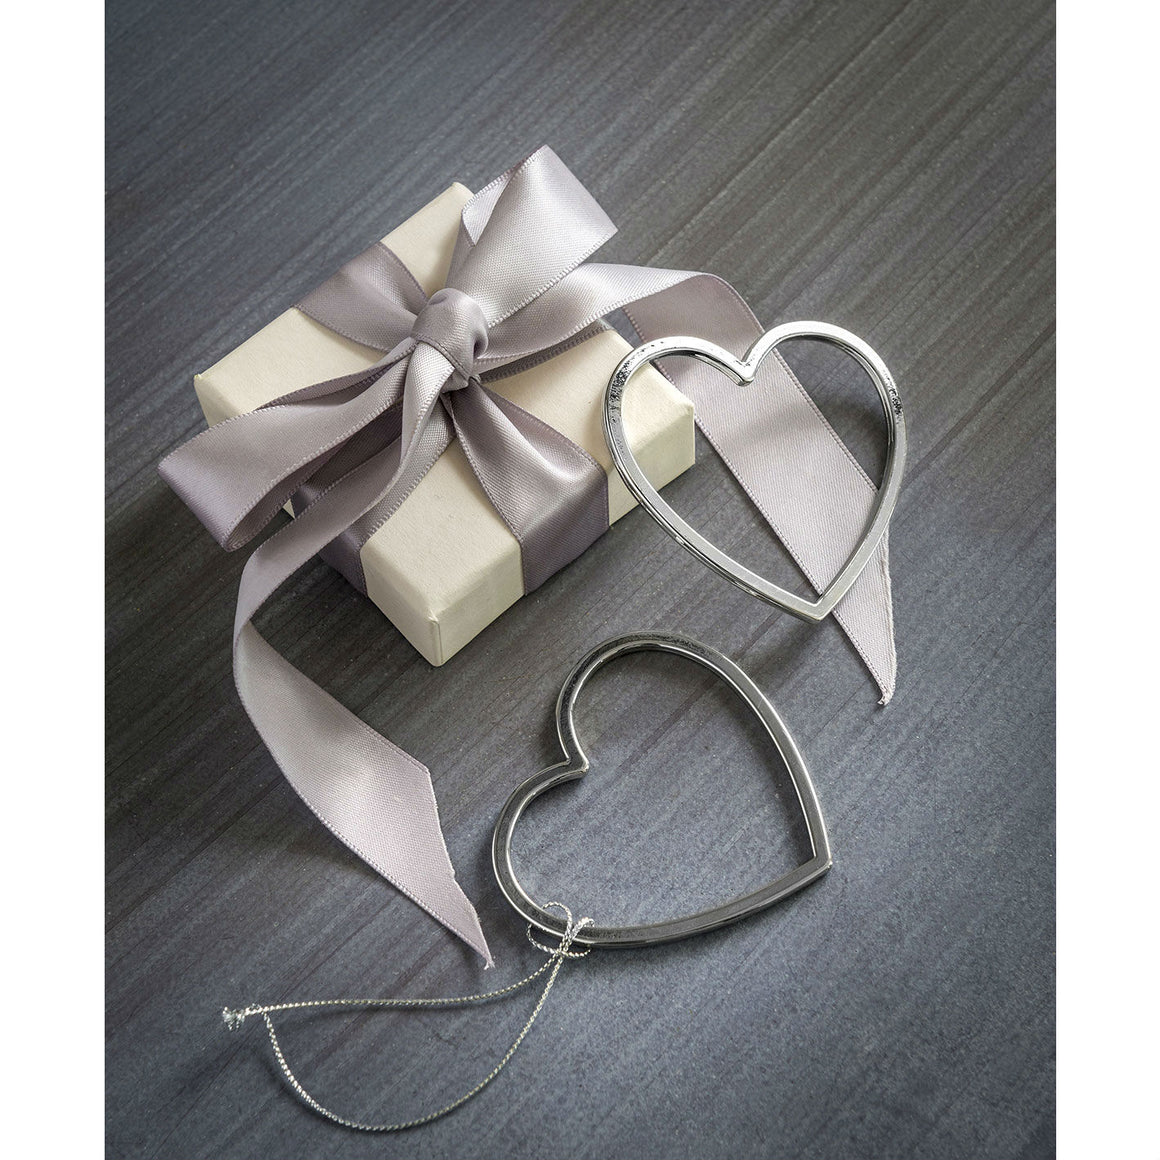 Set Of 2 Silver Cut Out Heart Decorations